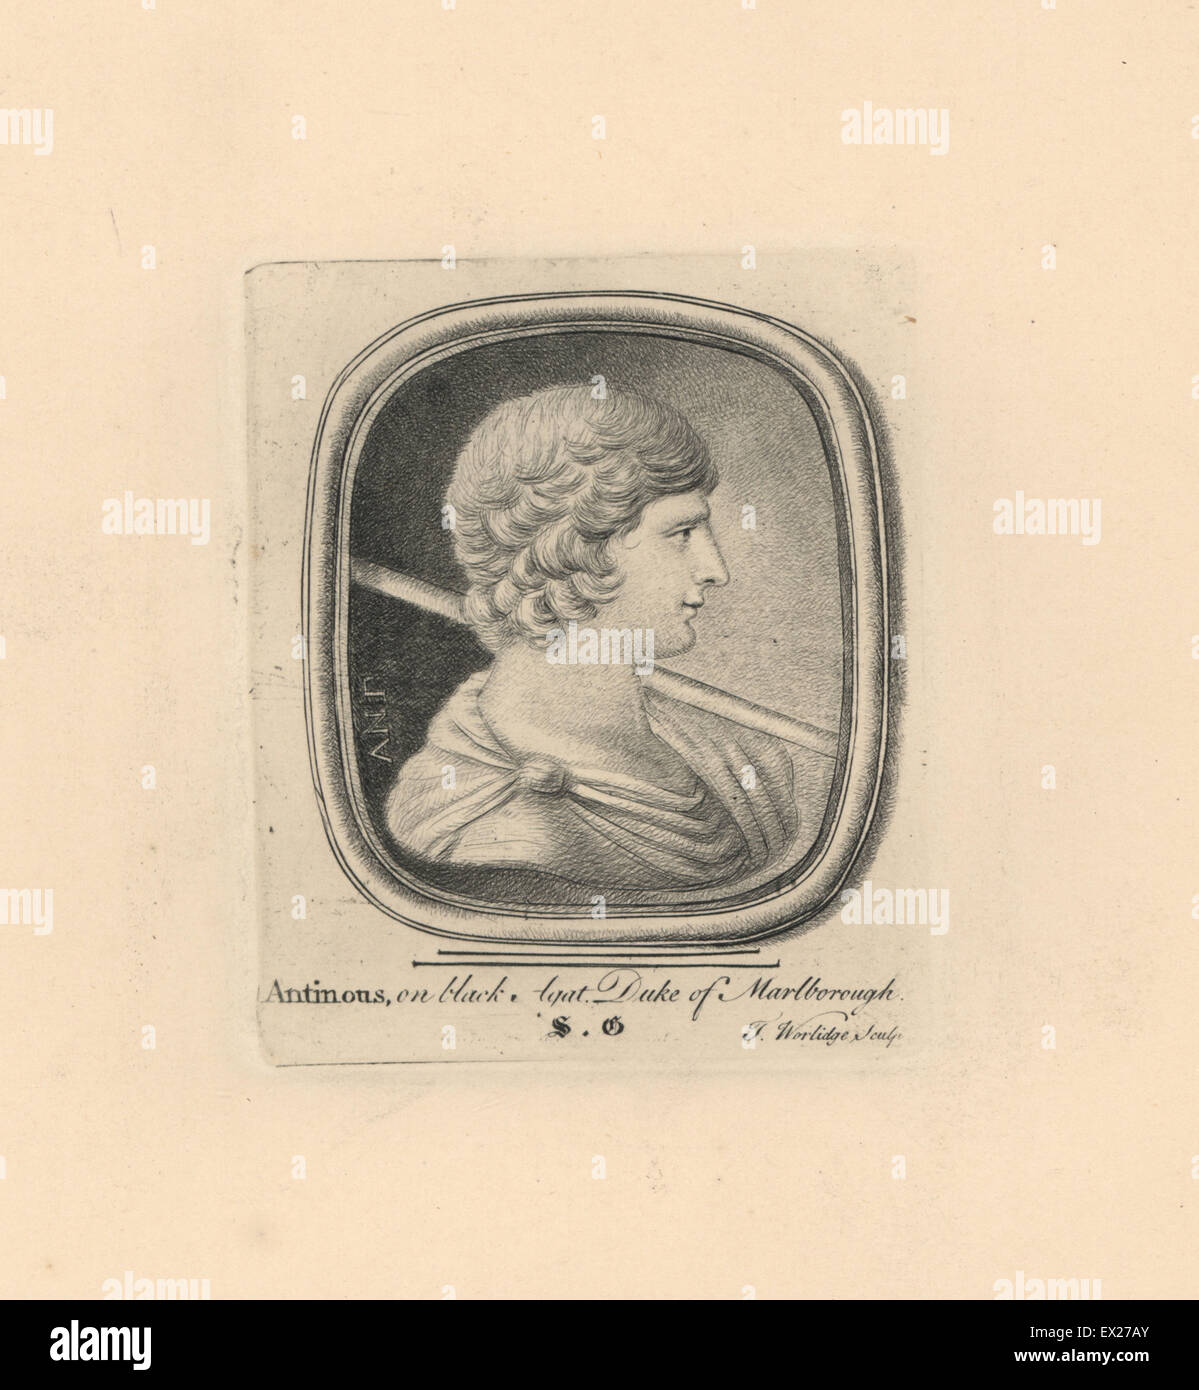 Portrait of Antinous, Bithynian Greek youth and lover of the Roman emperor Hadrian, on black agate from the Duke - Stock Image